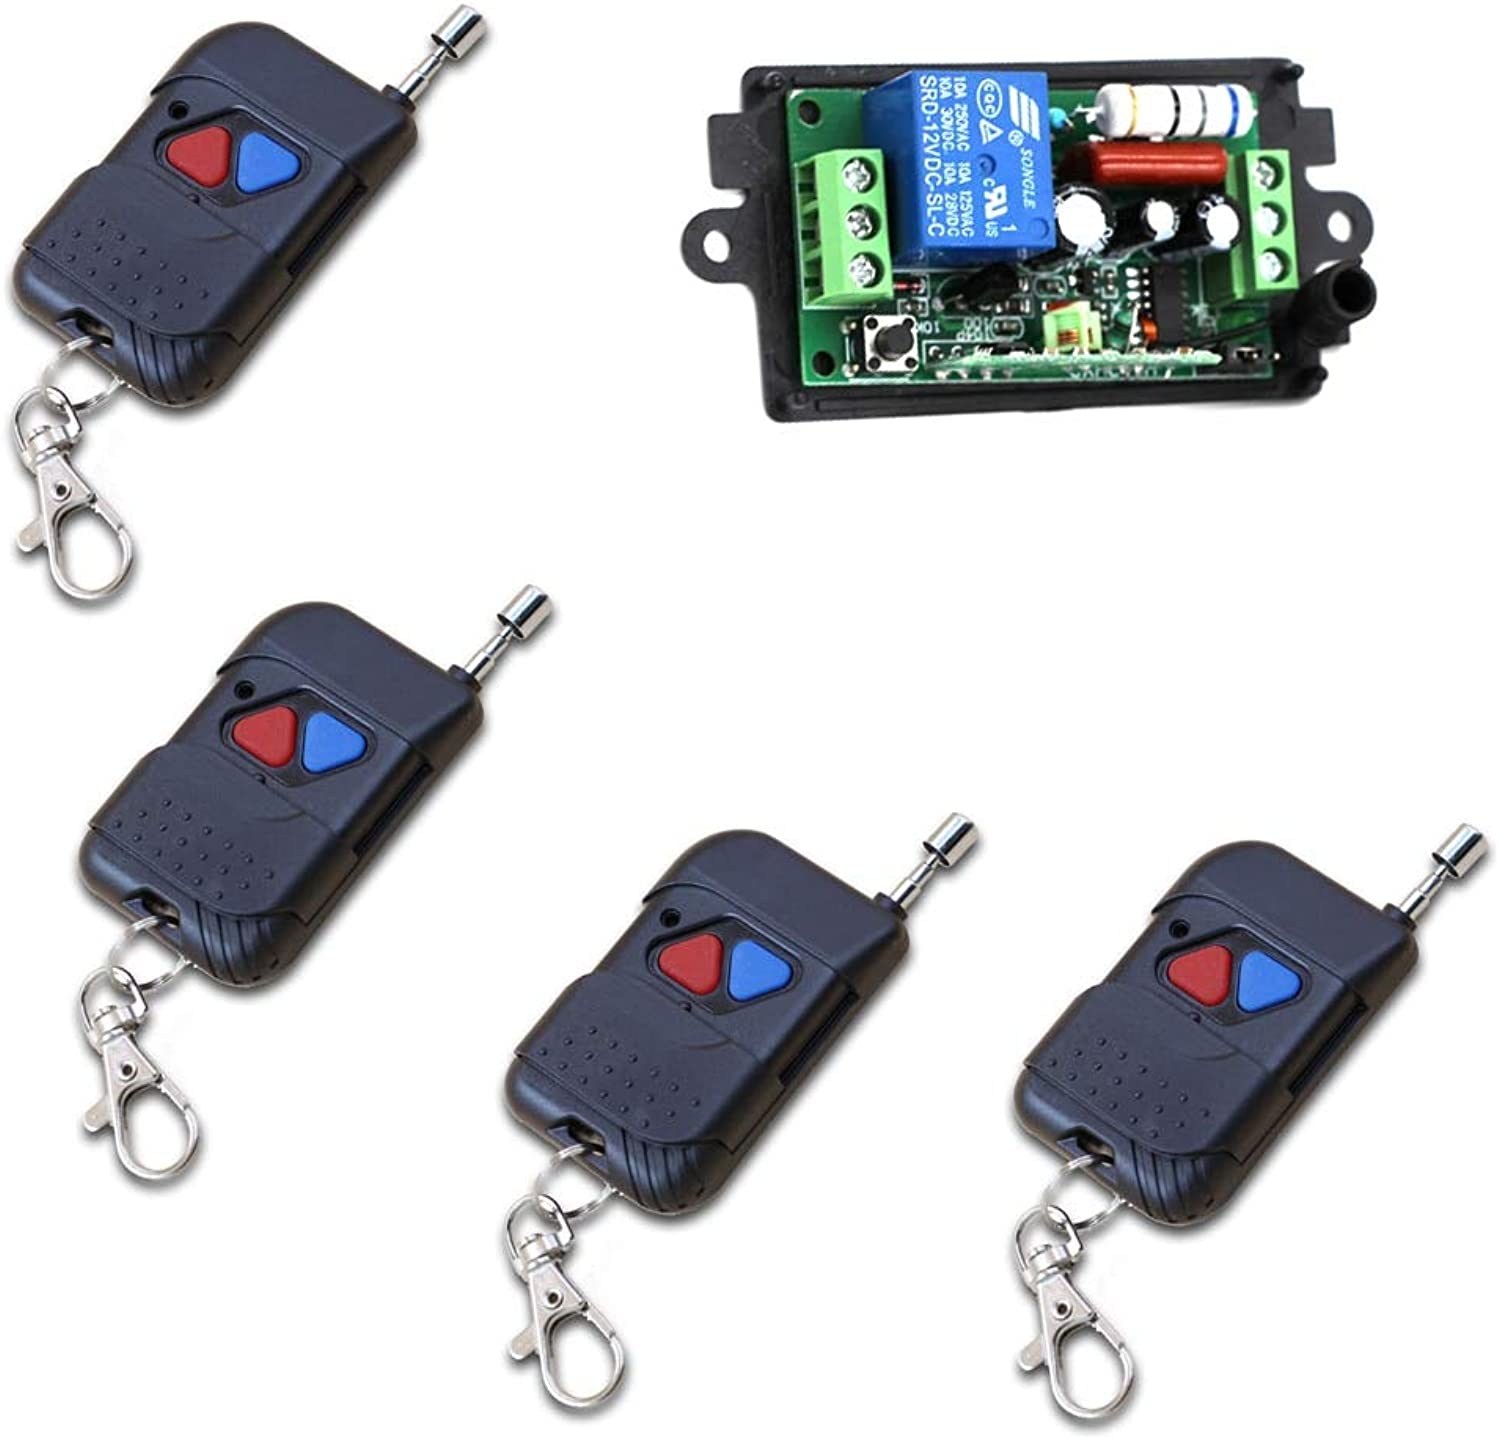 New 220V 110V 1CH Radio Controller RF Wireless Relay Remote Control Switch 315 433 MHZ Teleswitch 4 Transmitters +1 Receiver  (color  220V 433MHZ)